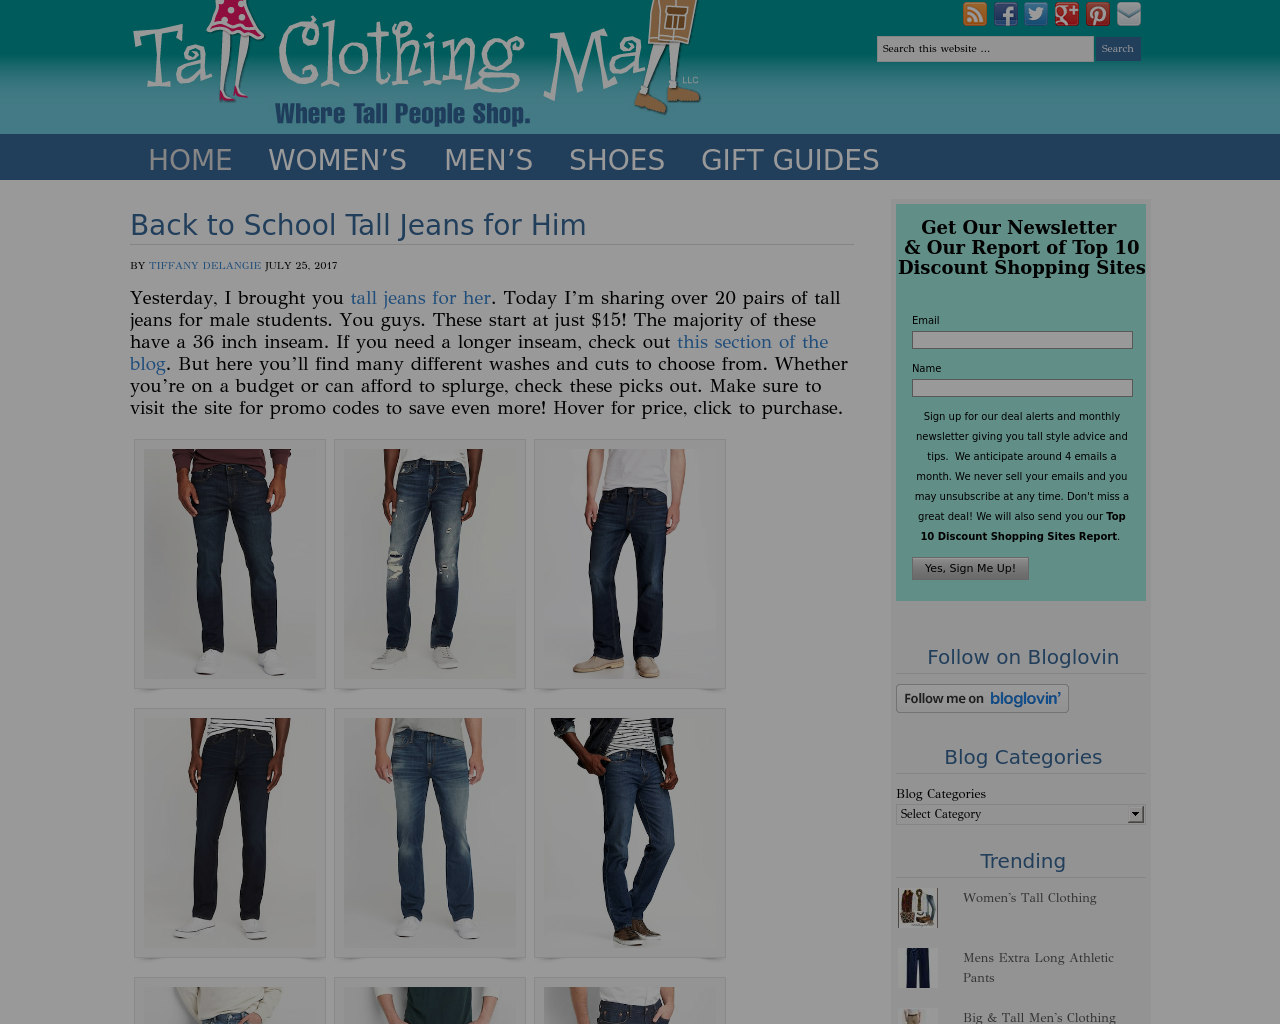 Tall-Clothing-Mall-Advertising-Reviews-Pricing